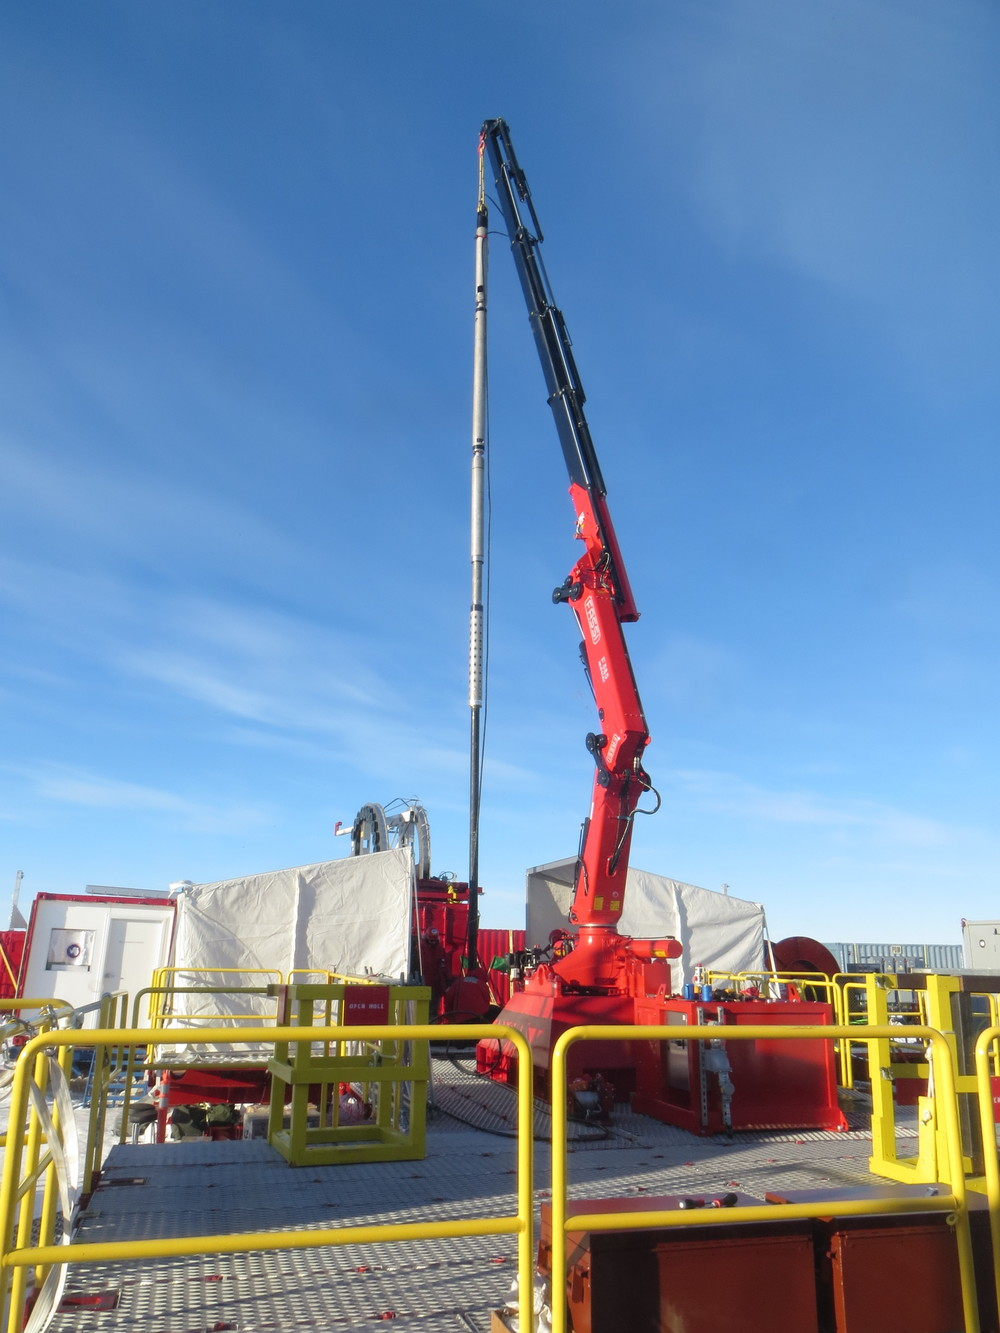 A crane lifts a large instrument to prepare it for its trip down the borehole. PHOTO BY TRISTA VICK-MAJORS